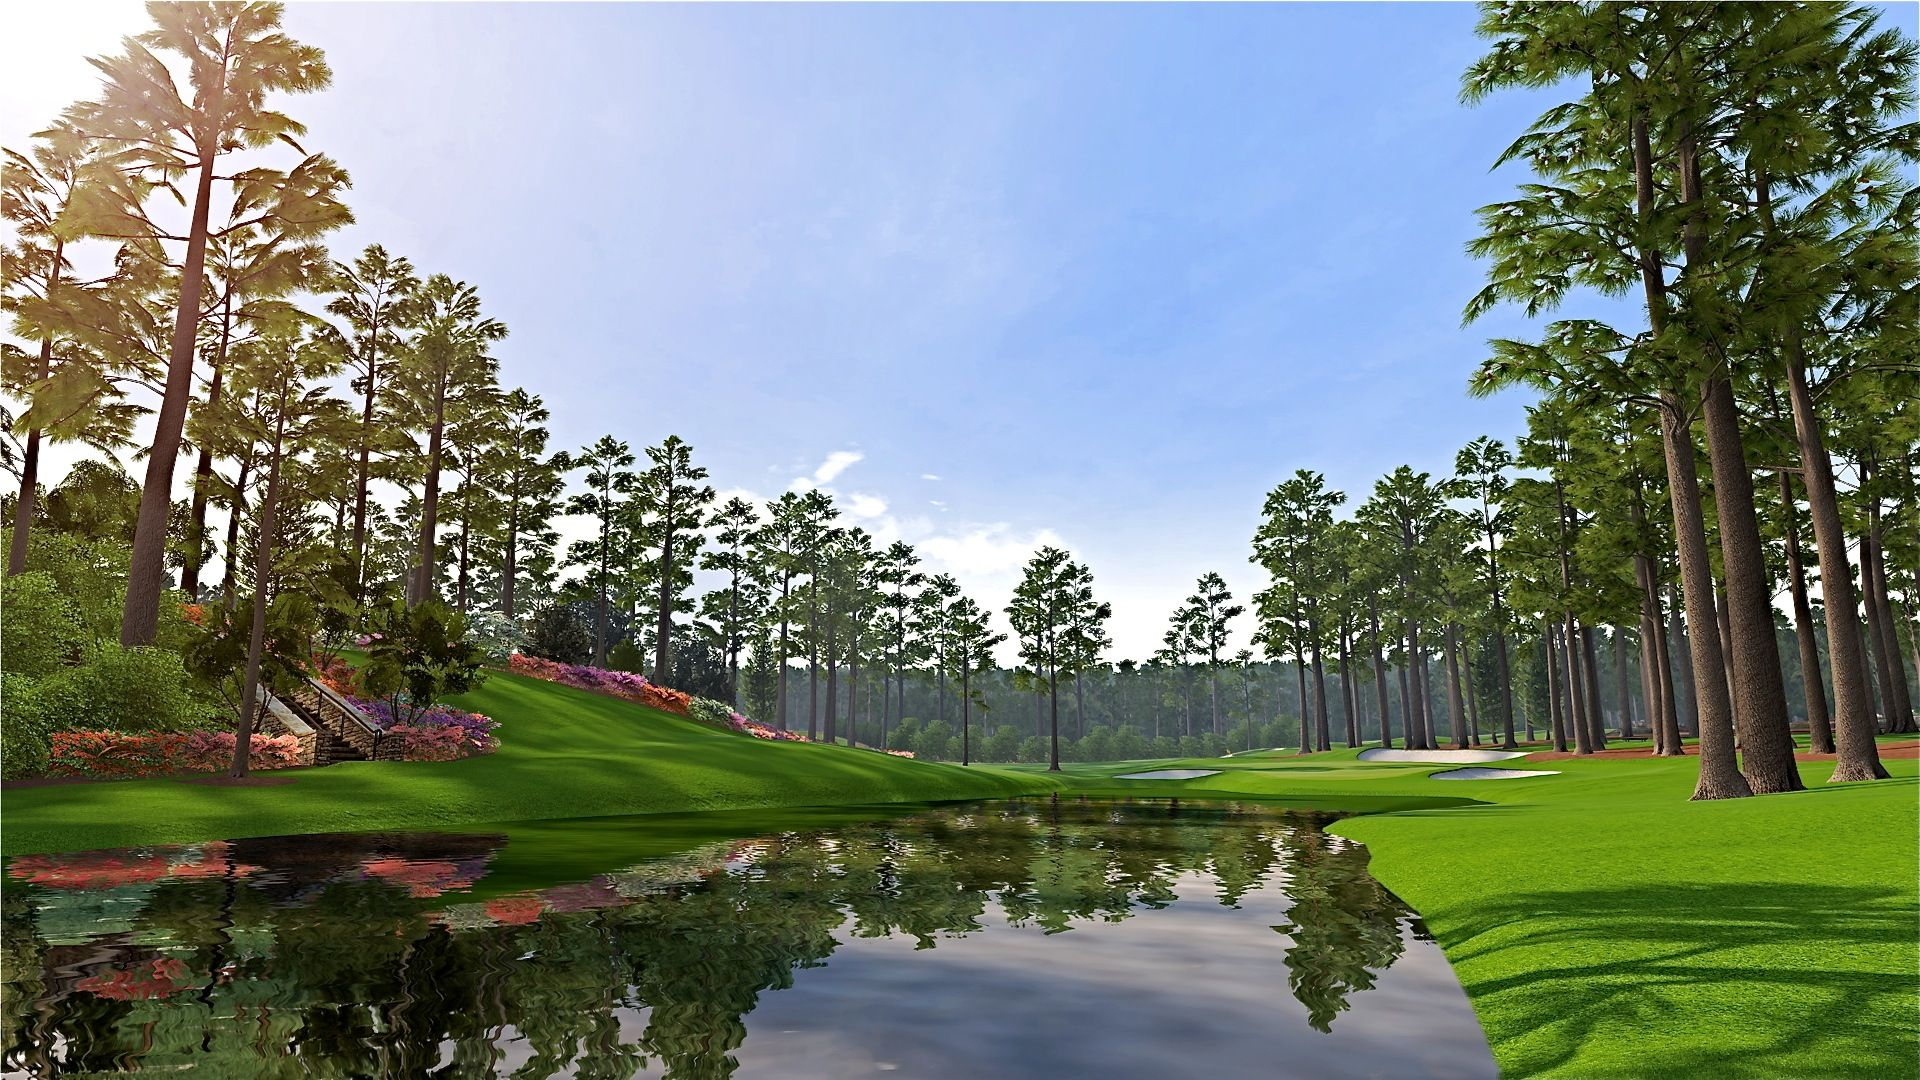 Augusta National 16th hole. Just beautiful. golf